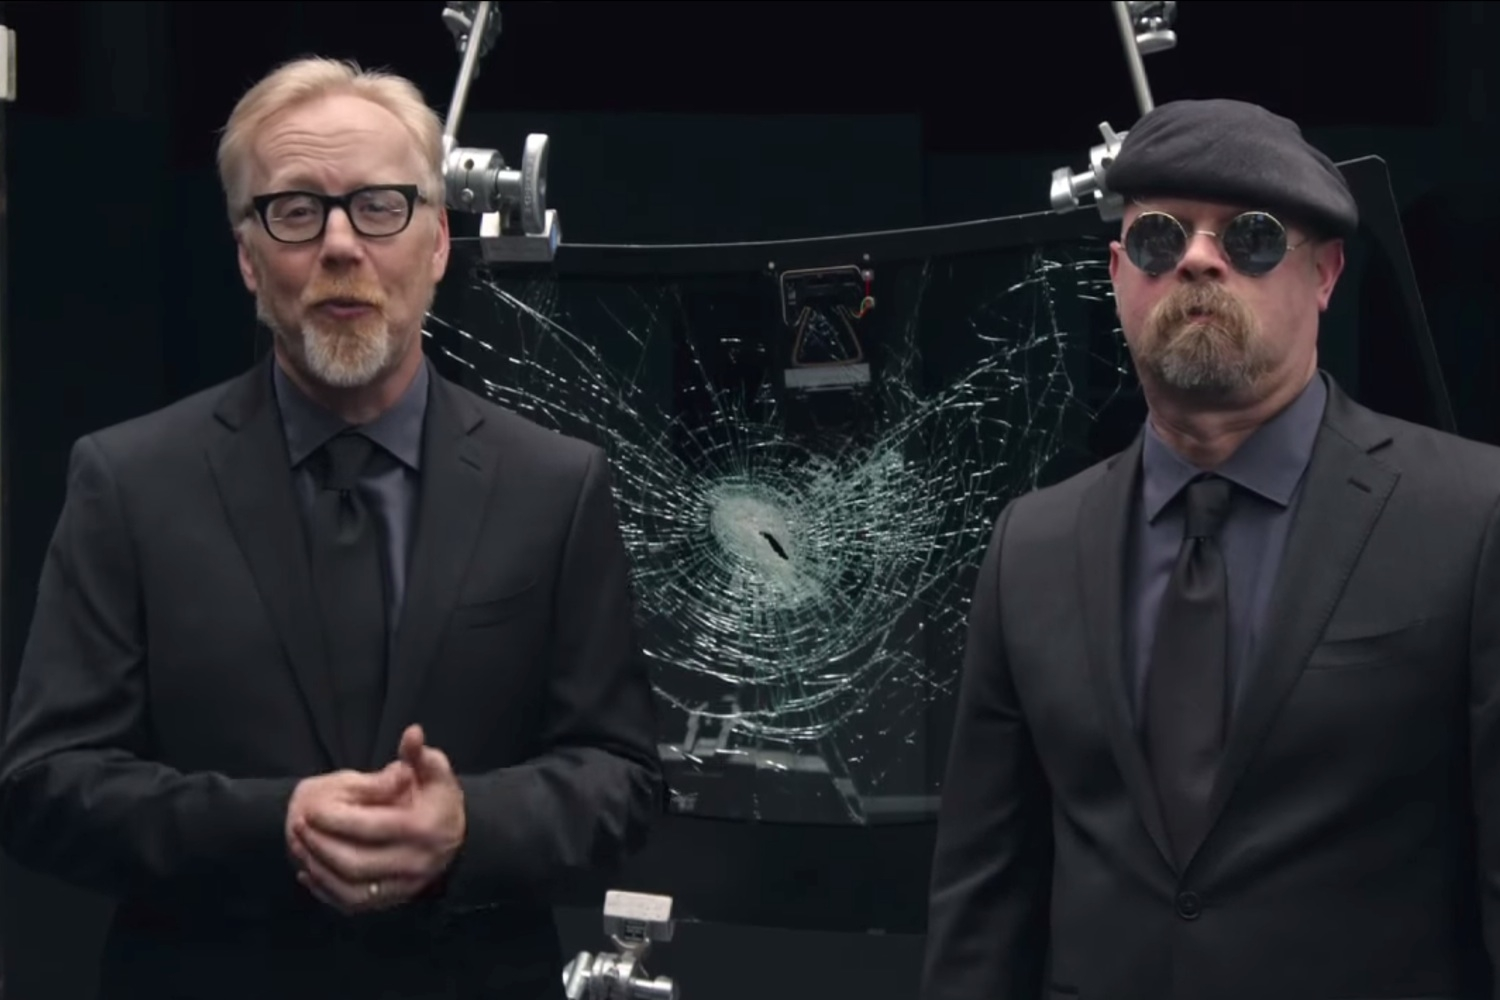 Watch The Mythbusters Try To Break Gorilla Glass 4